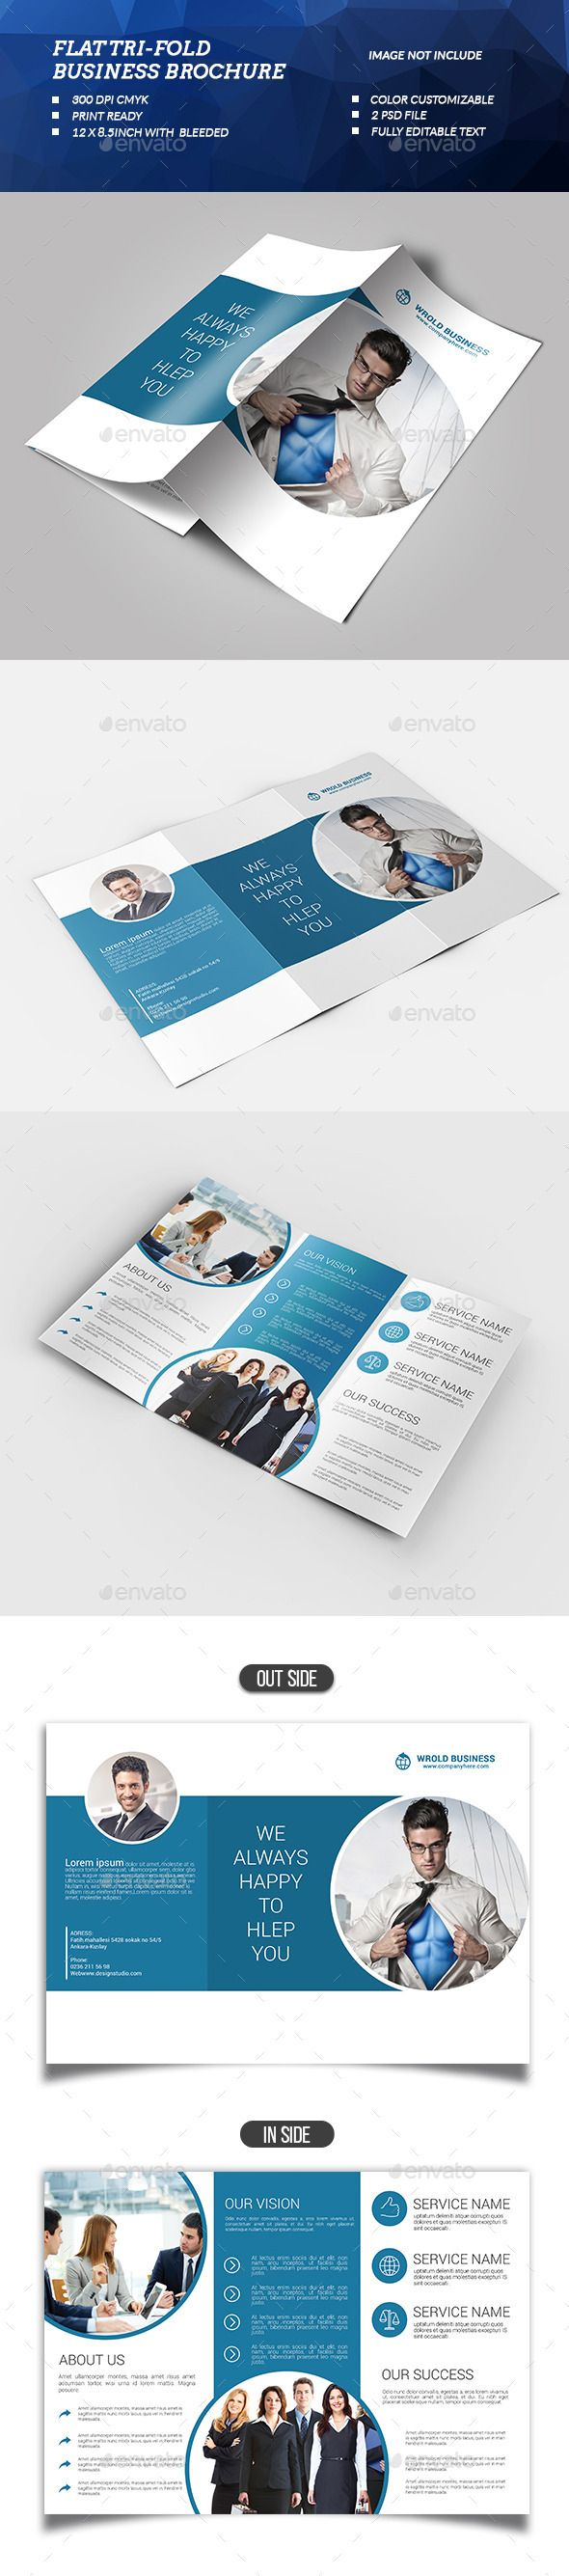 flat tri fold business brochure template design download httpgraphicrivernetitemflat trifold business brochure 13179036refksioks